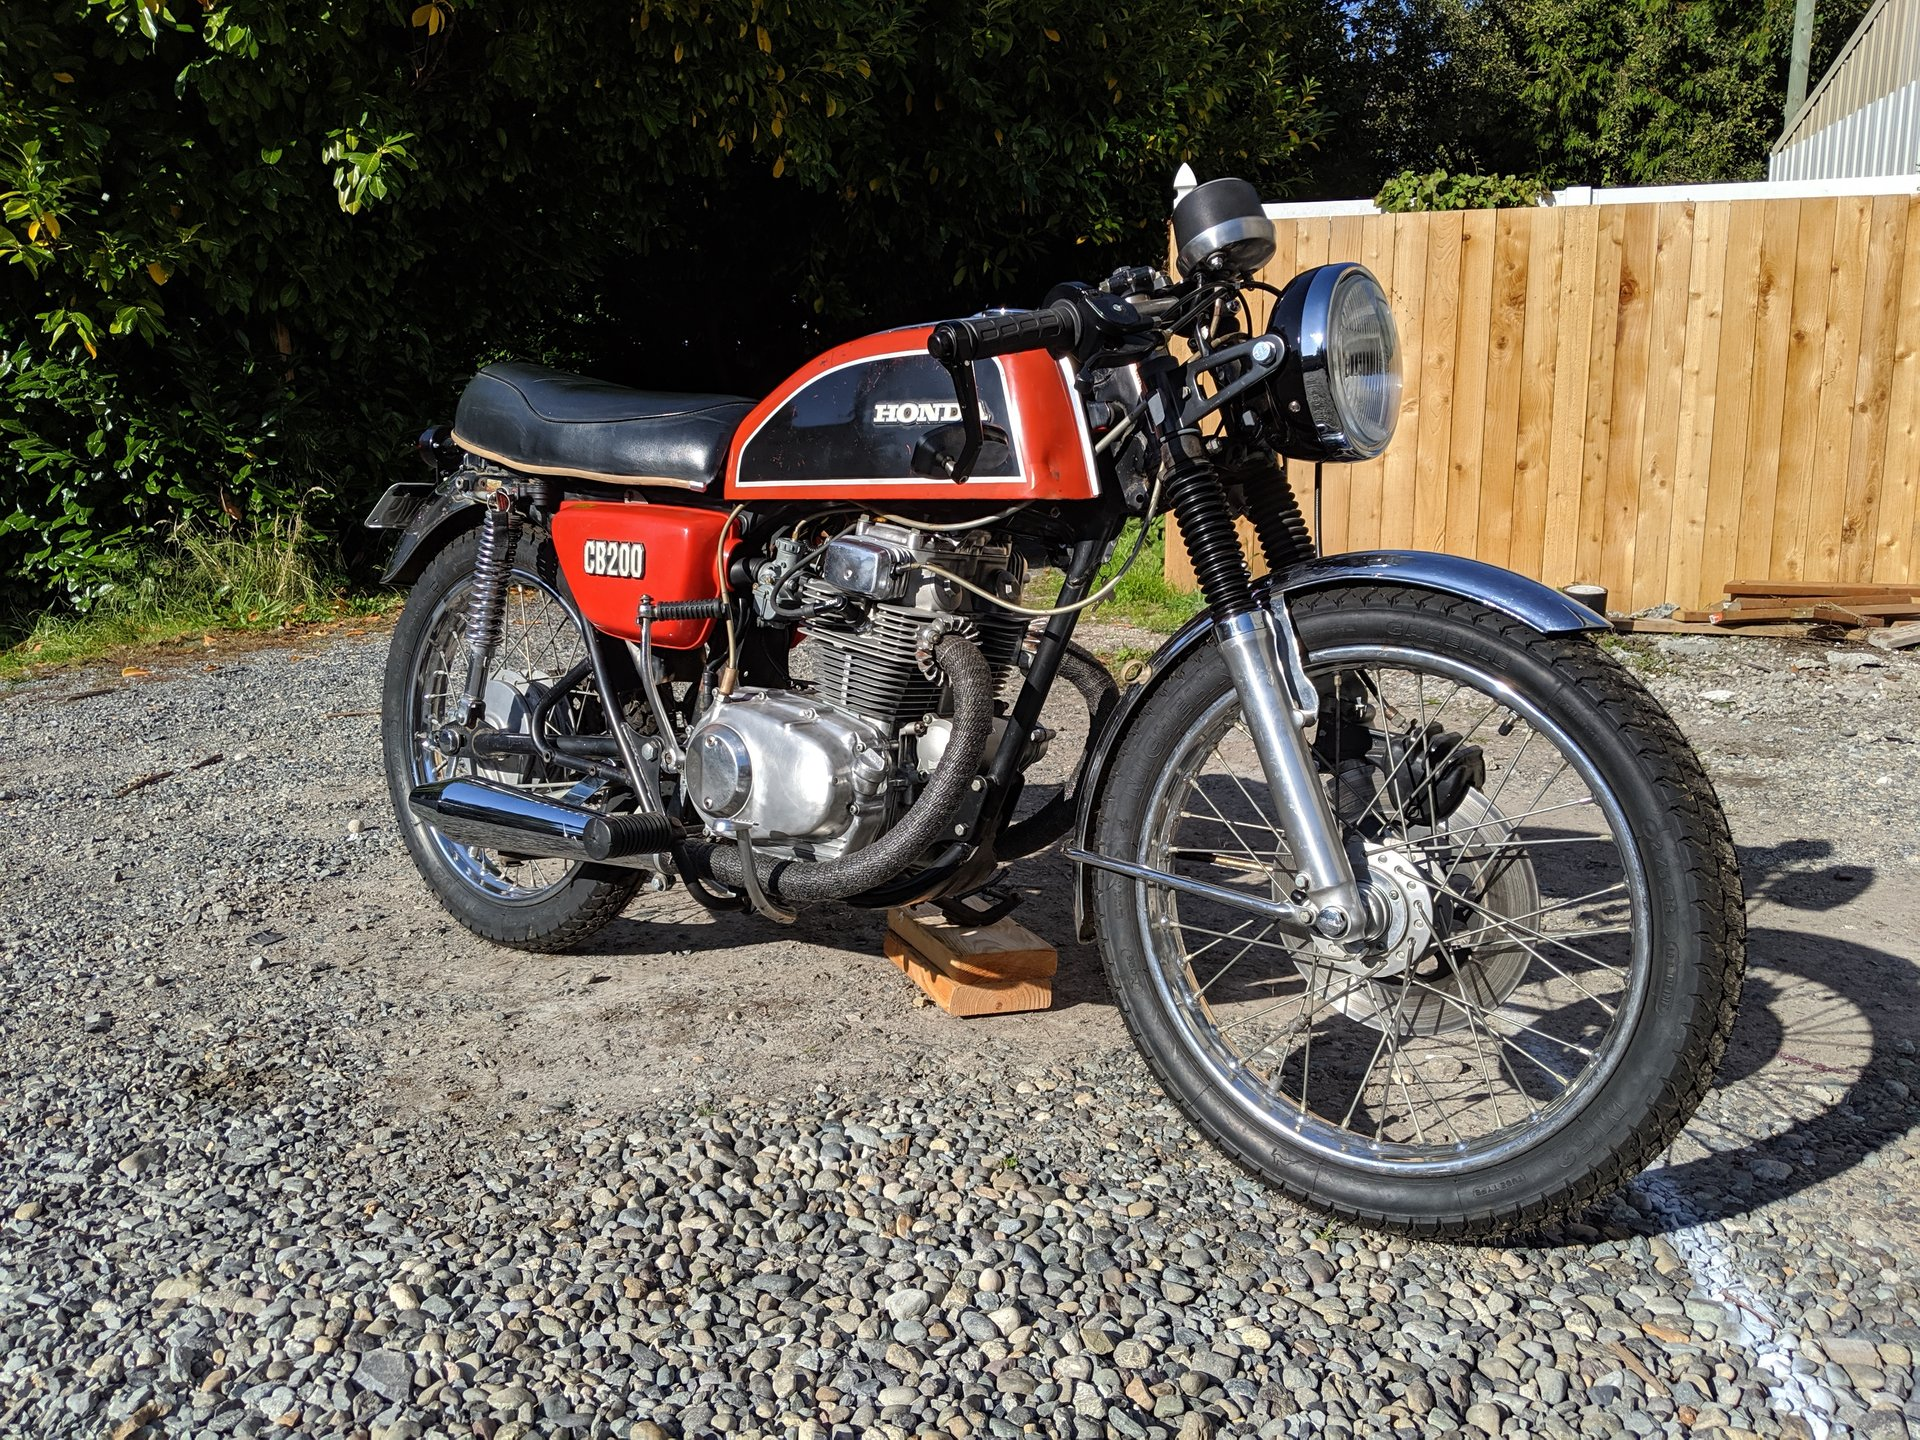 Cl Seattle Motorcycle   Amatmotor.co